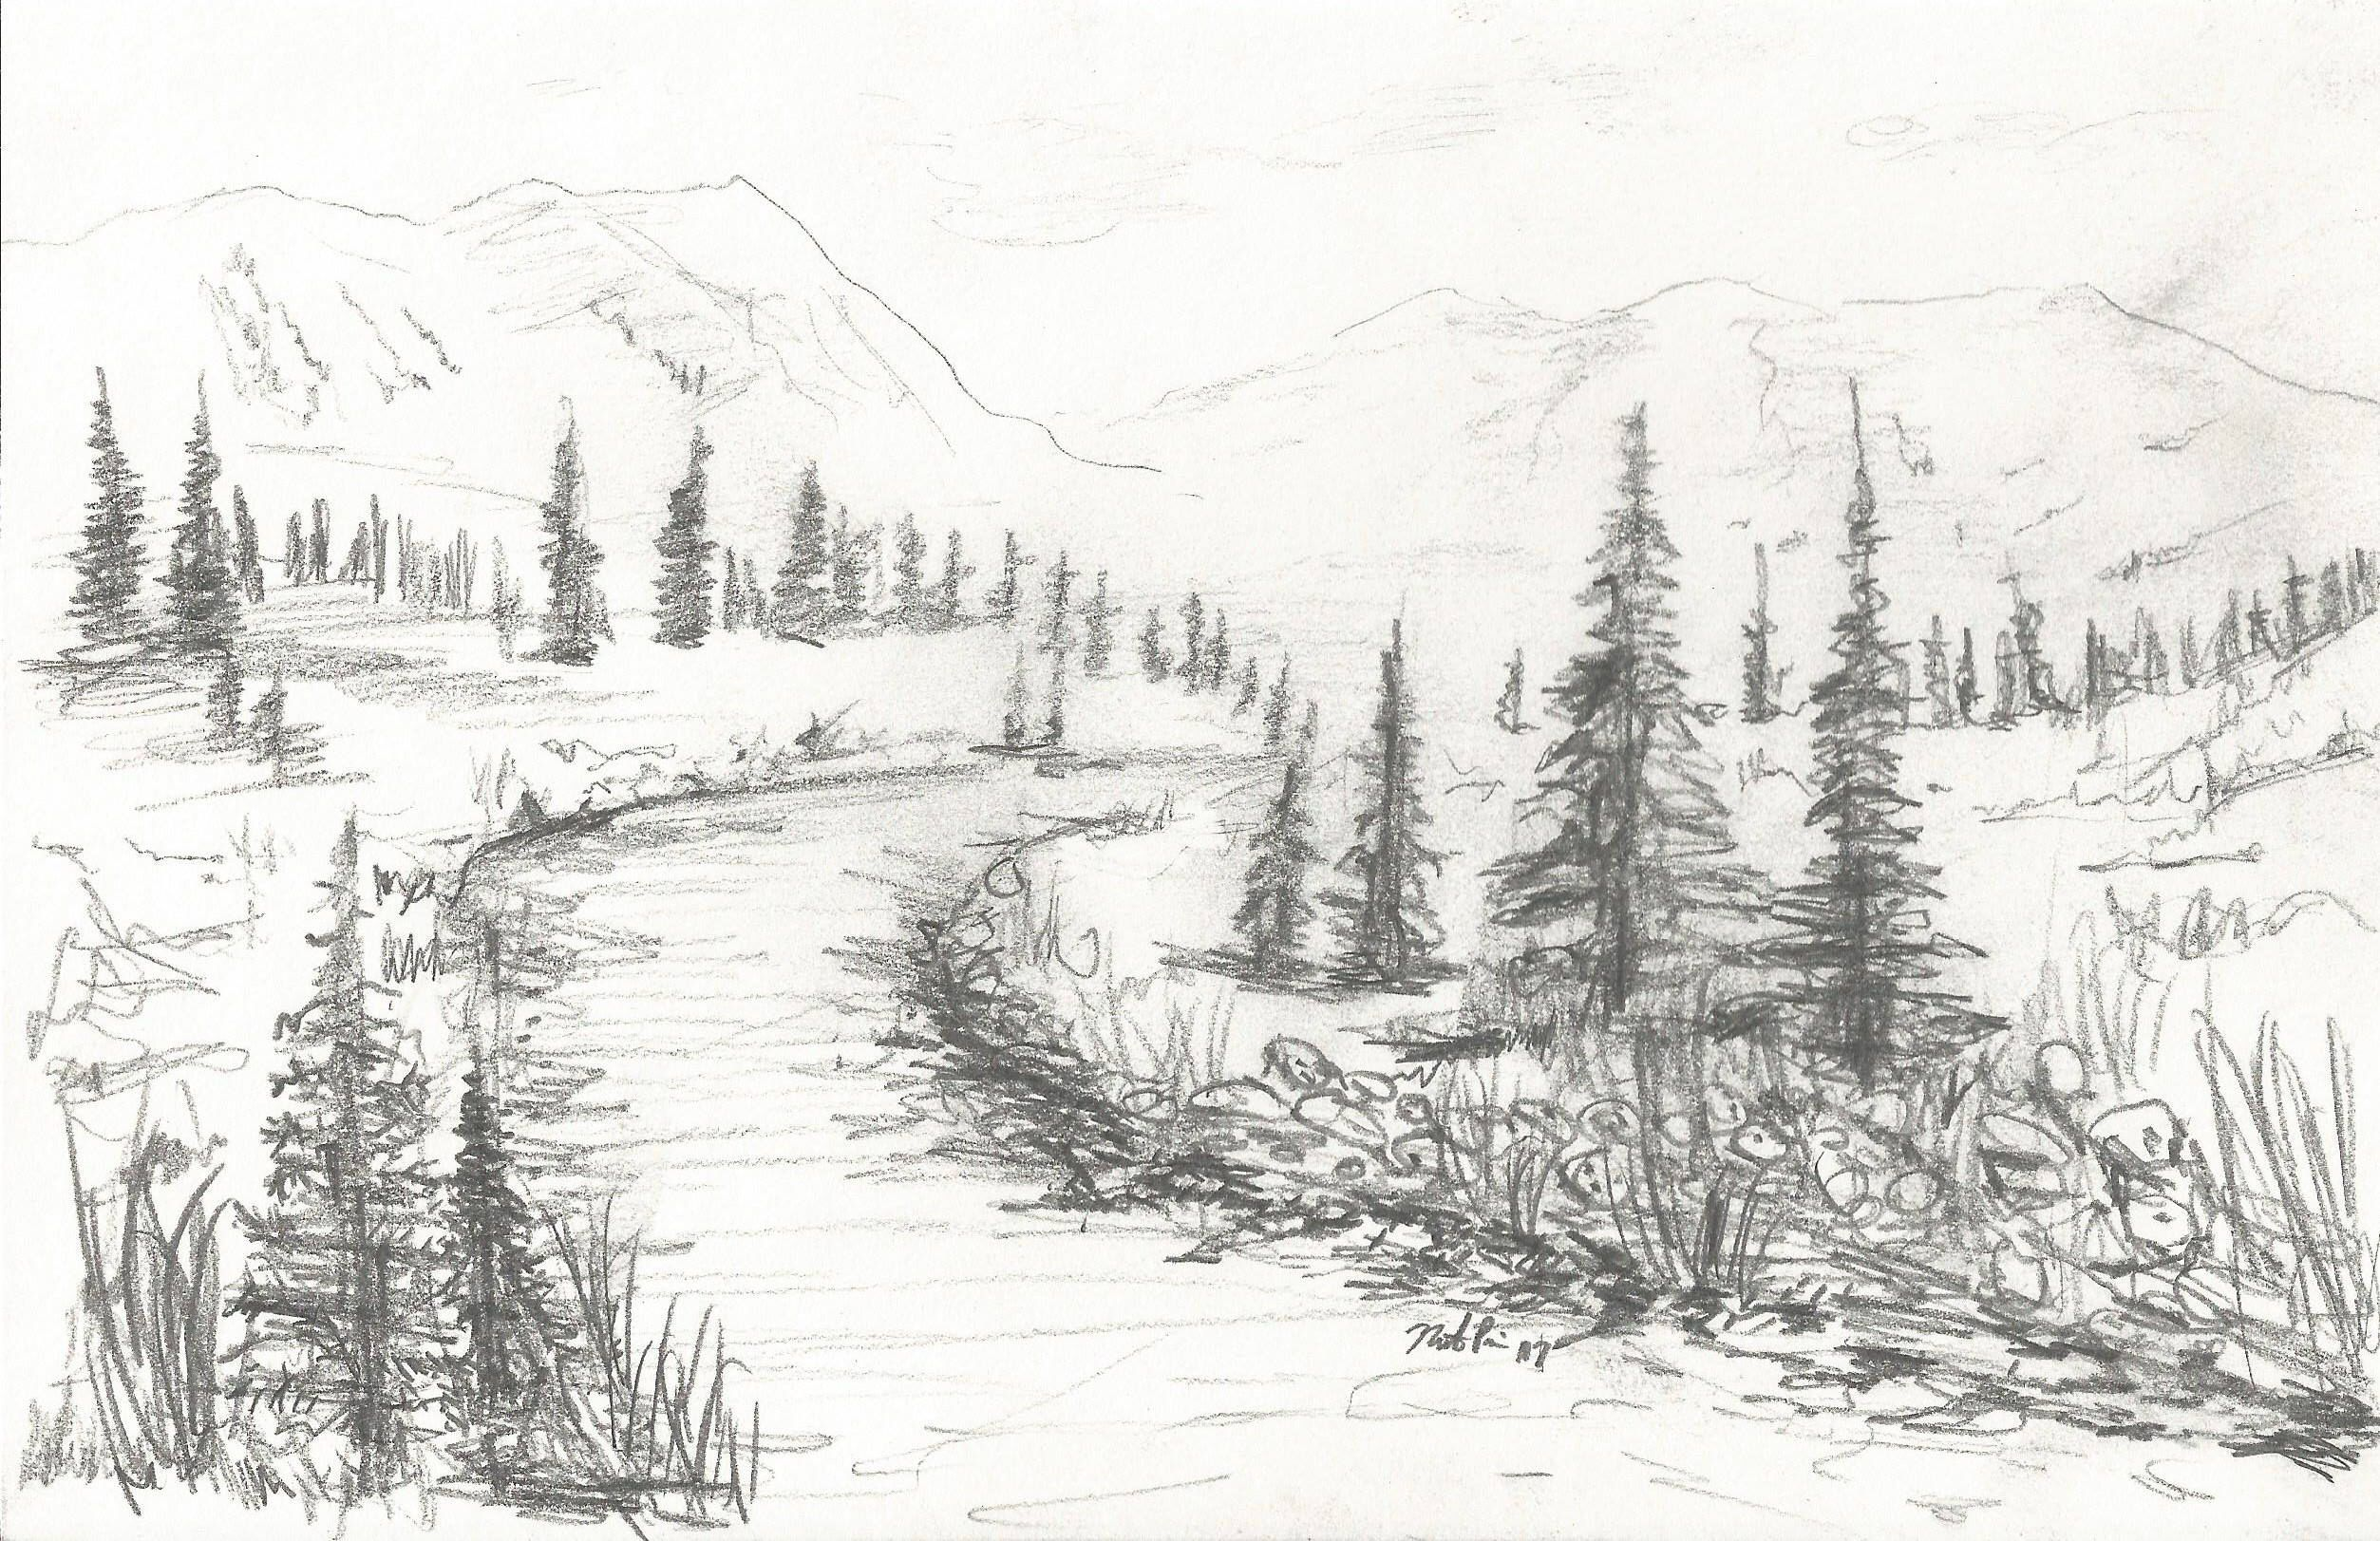 Landscape pencil drawing instant download artwork mountain scene by natepricecreations on etsy https